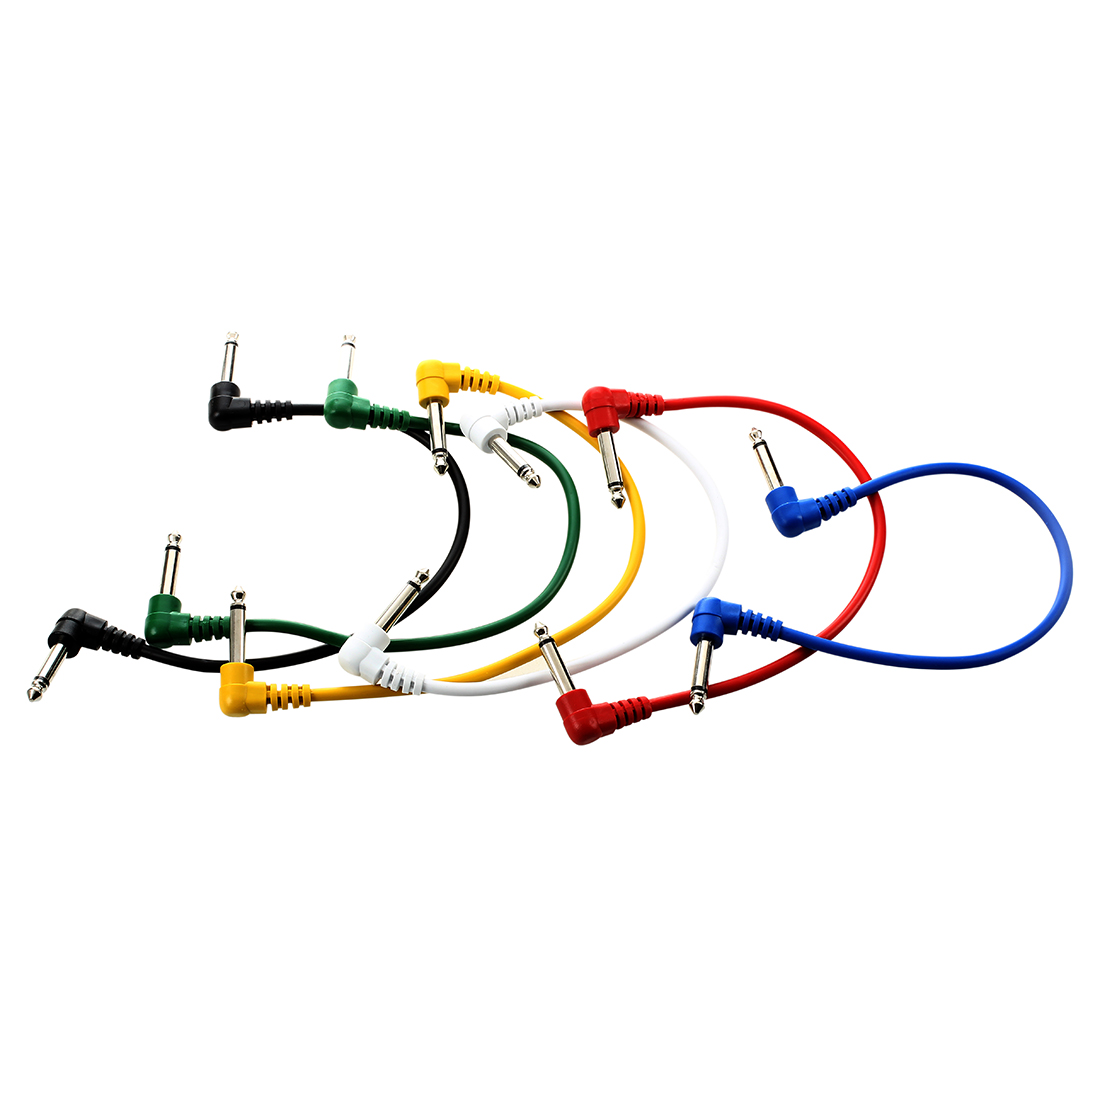 5X Set of 6pcs Colorful Guitar Patch Cables Angled for Guitar Effect Pedals<br>